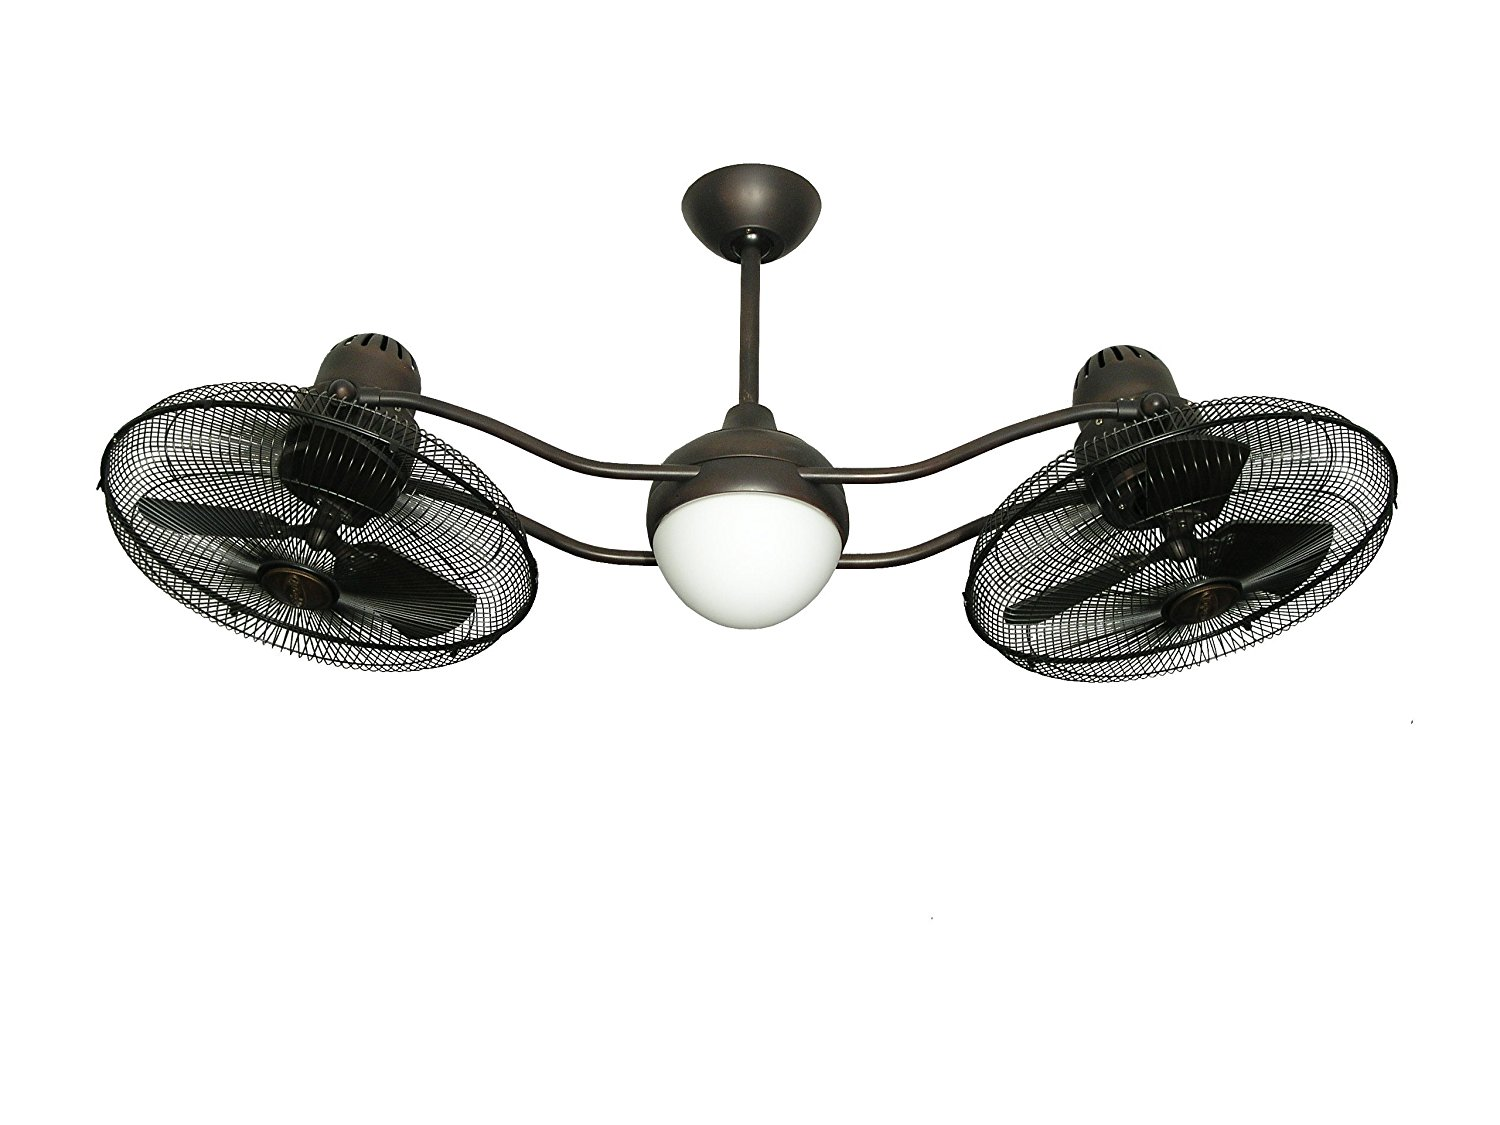 Dual Outdoor Ceiling Fans With Lights Double Ceiling Fan With Lights For Better Air Movement